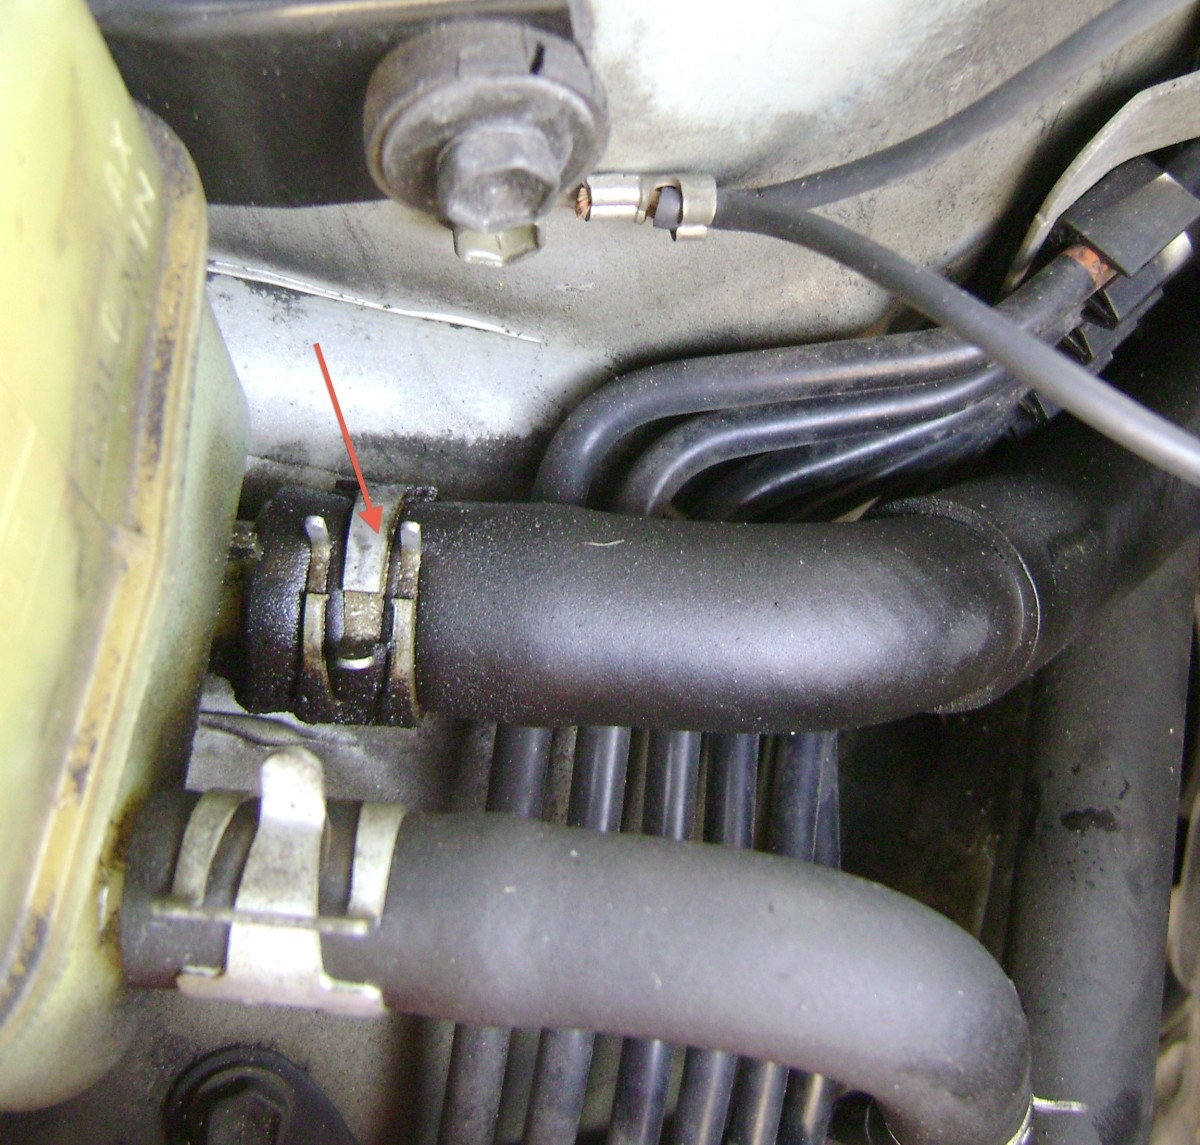 U.  (Optional) detach the power steering return line hose from the reservoir and move it to the firewall